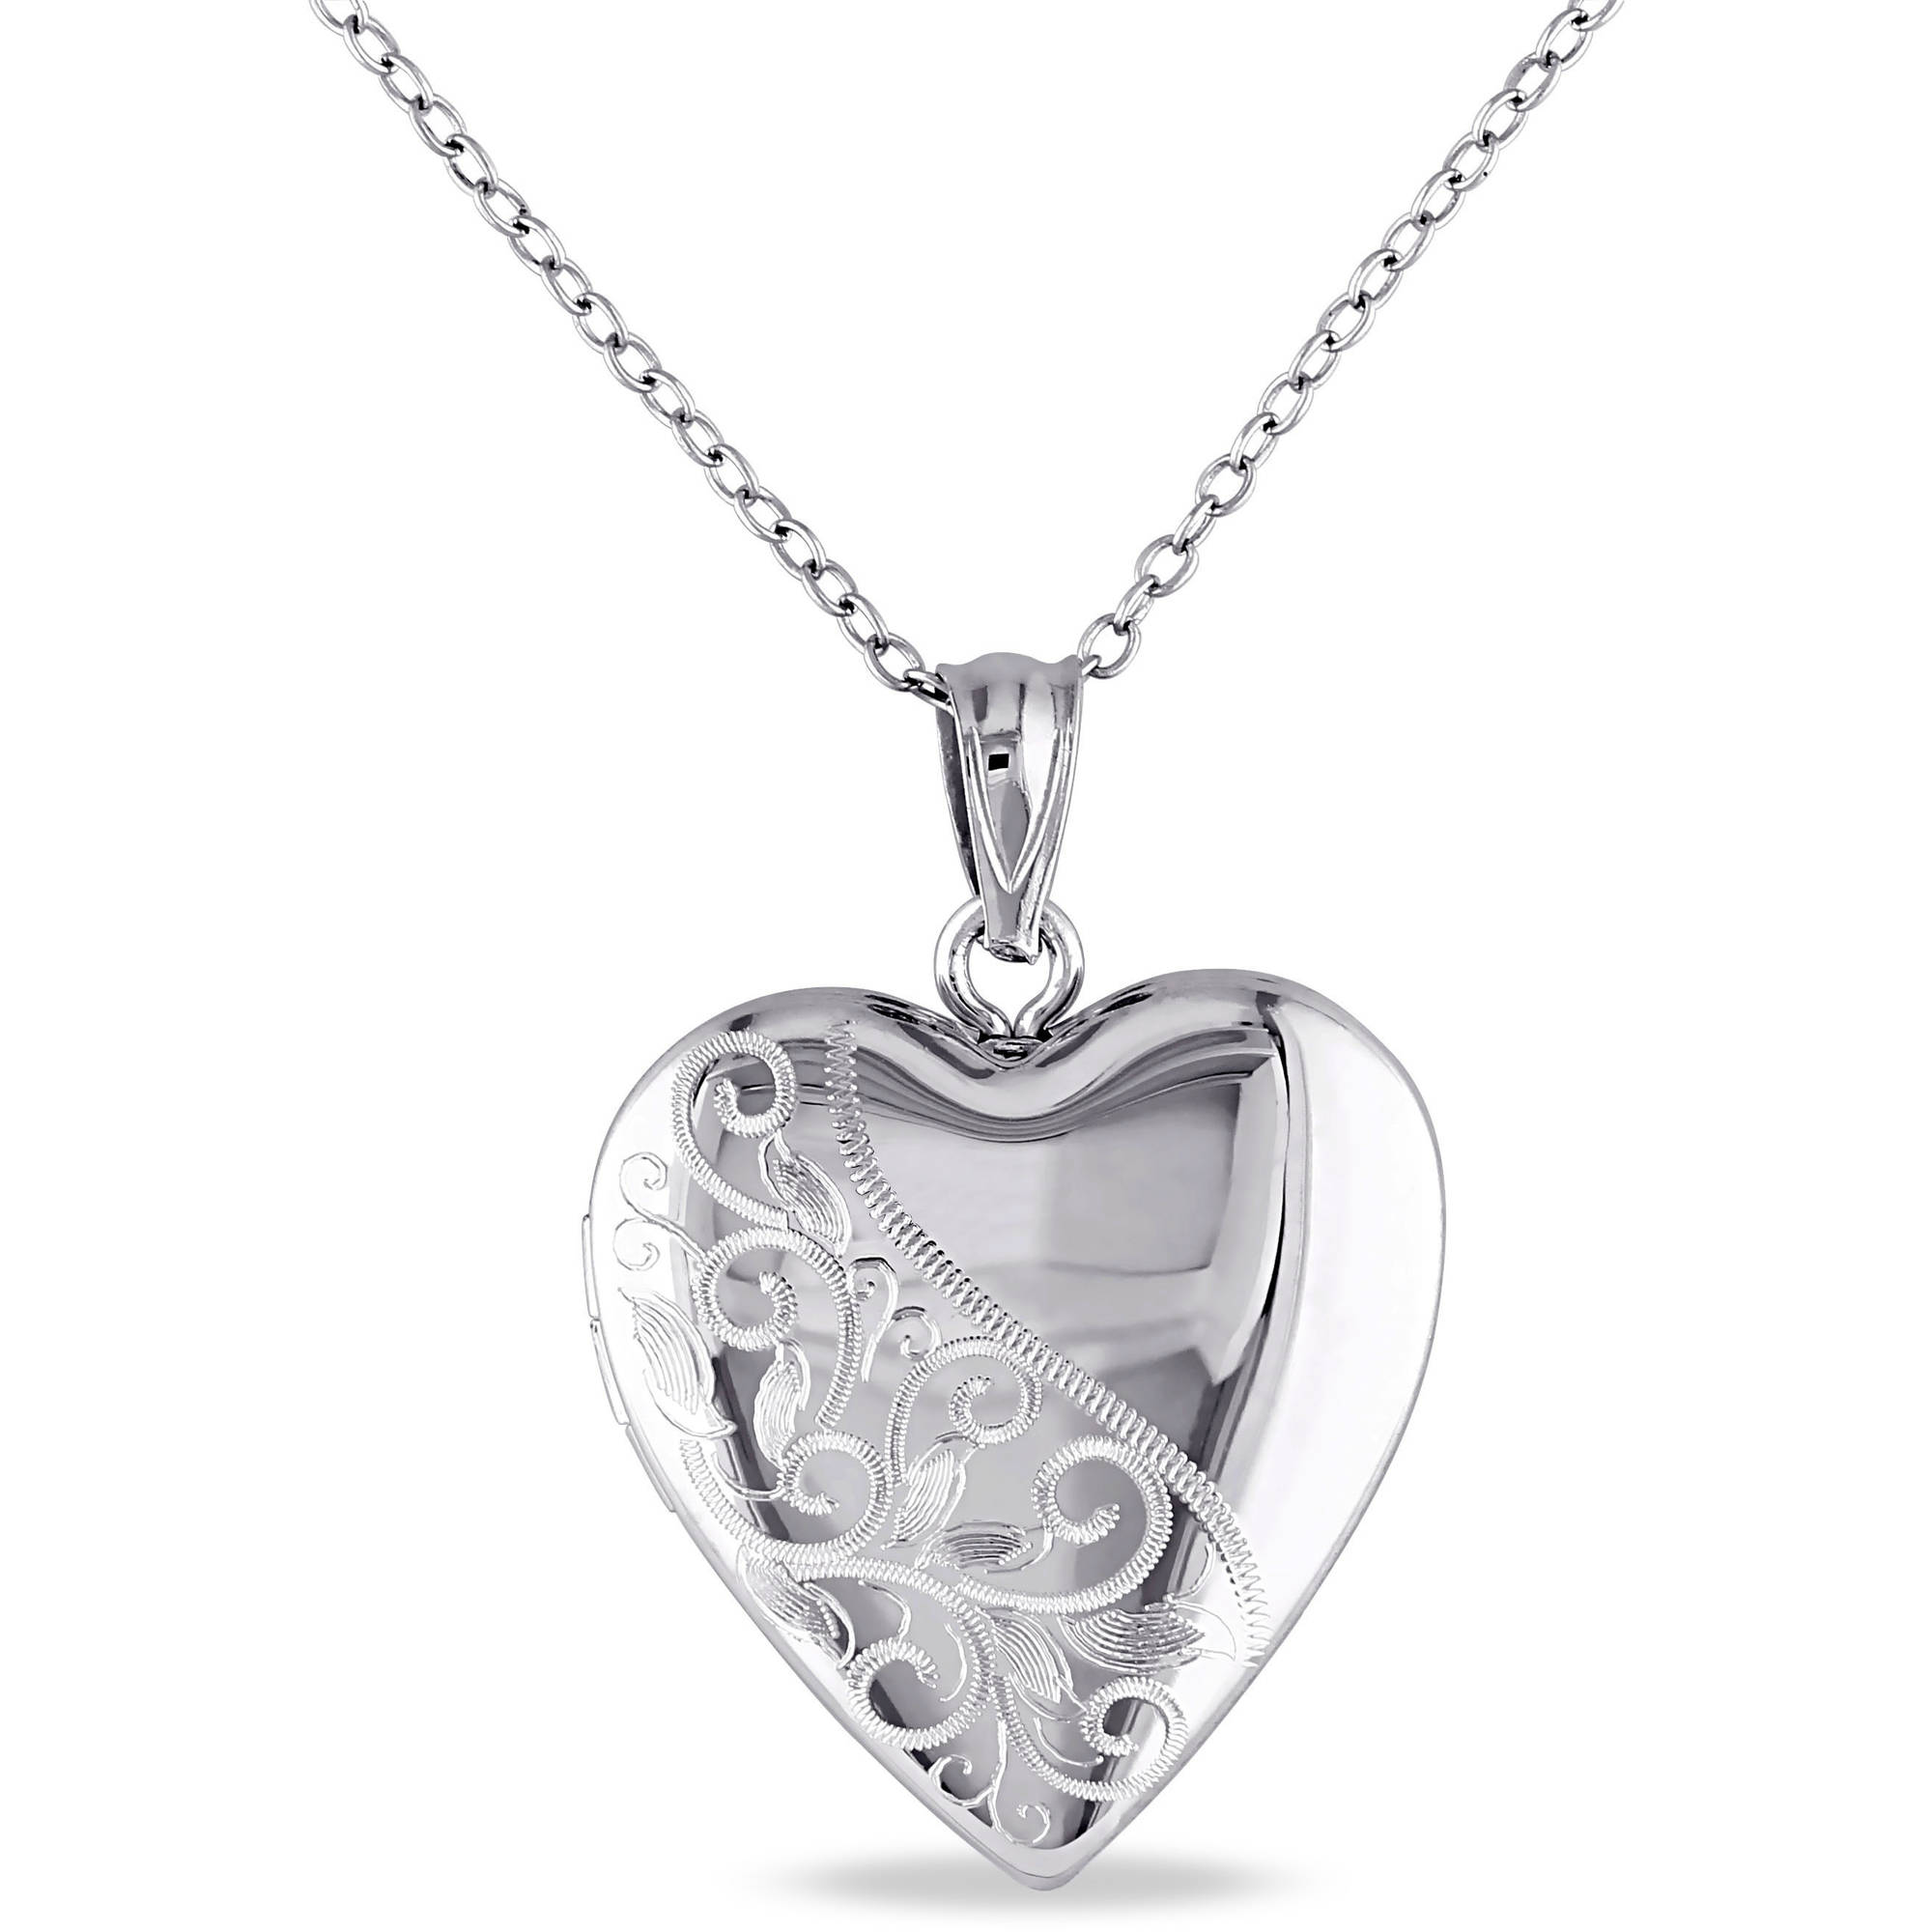 Asteria Sterling Silver Heart Locket Pendant, 18